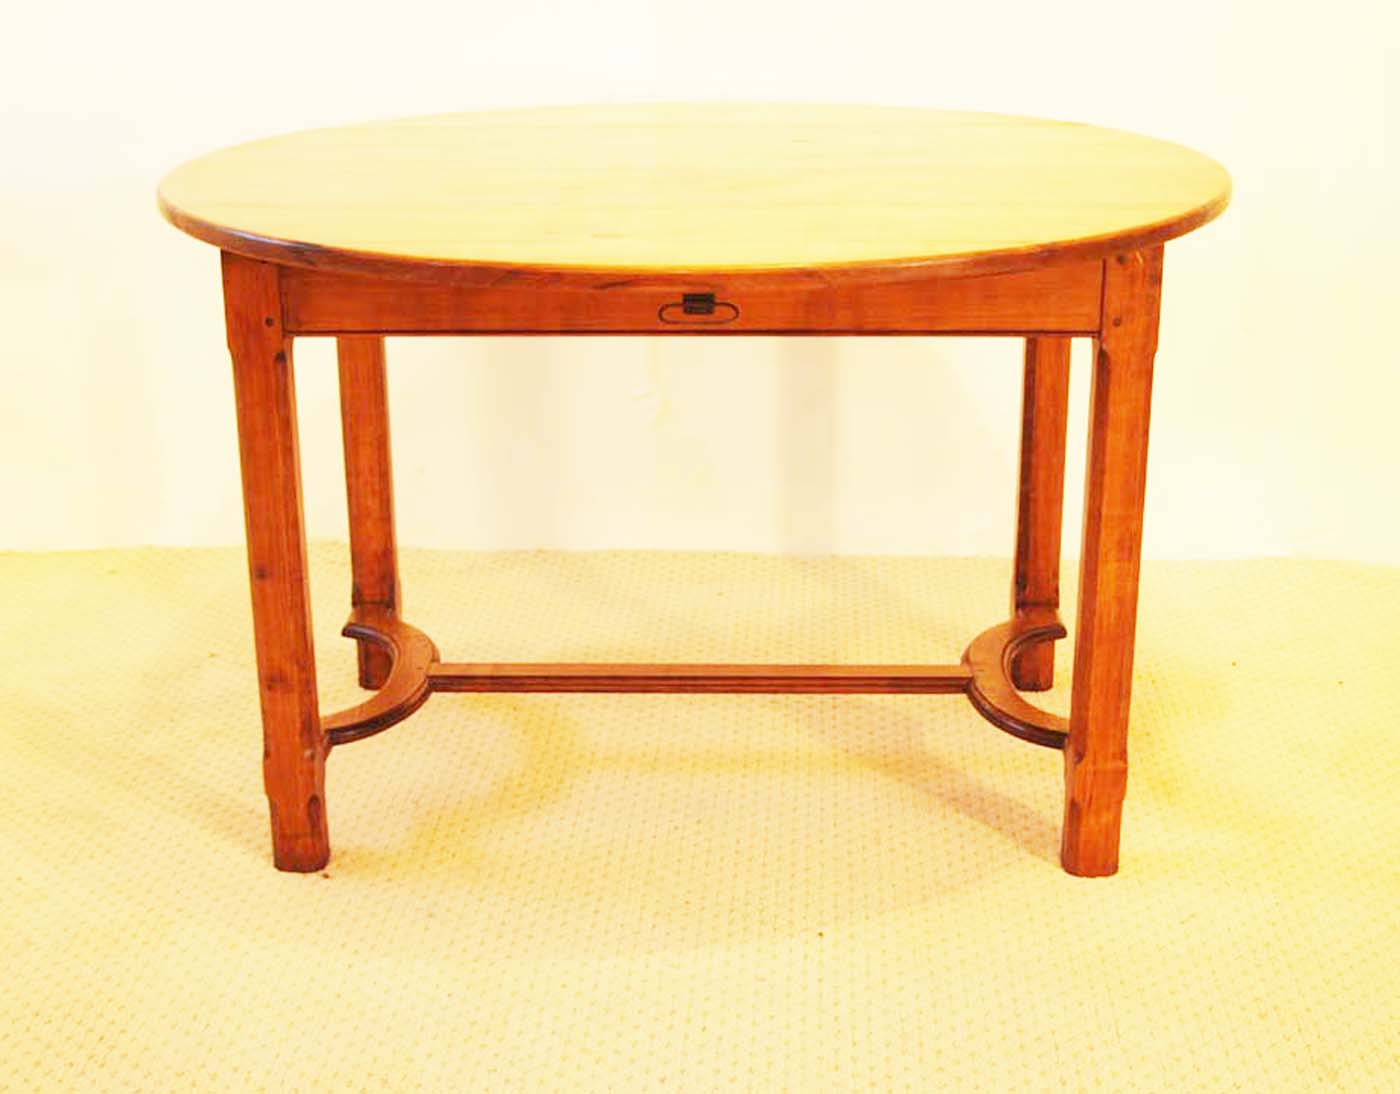 French Antique Style Round Table with Crinoline Stretcher